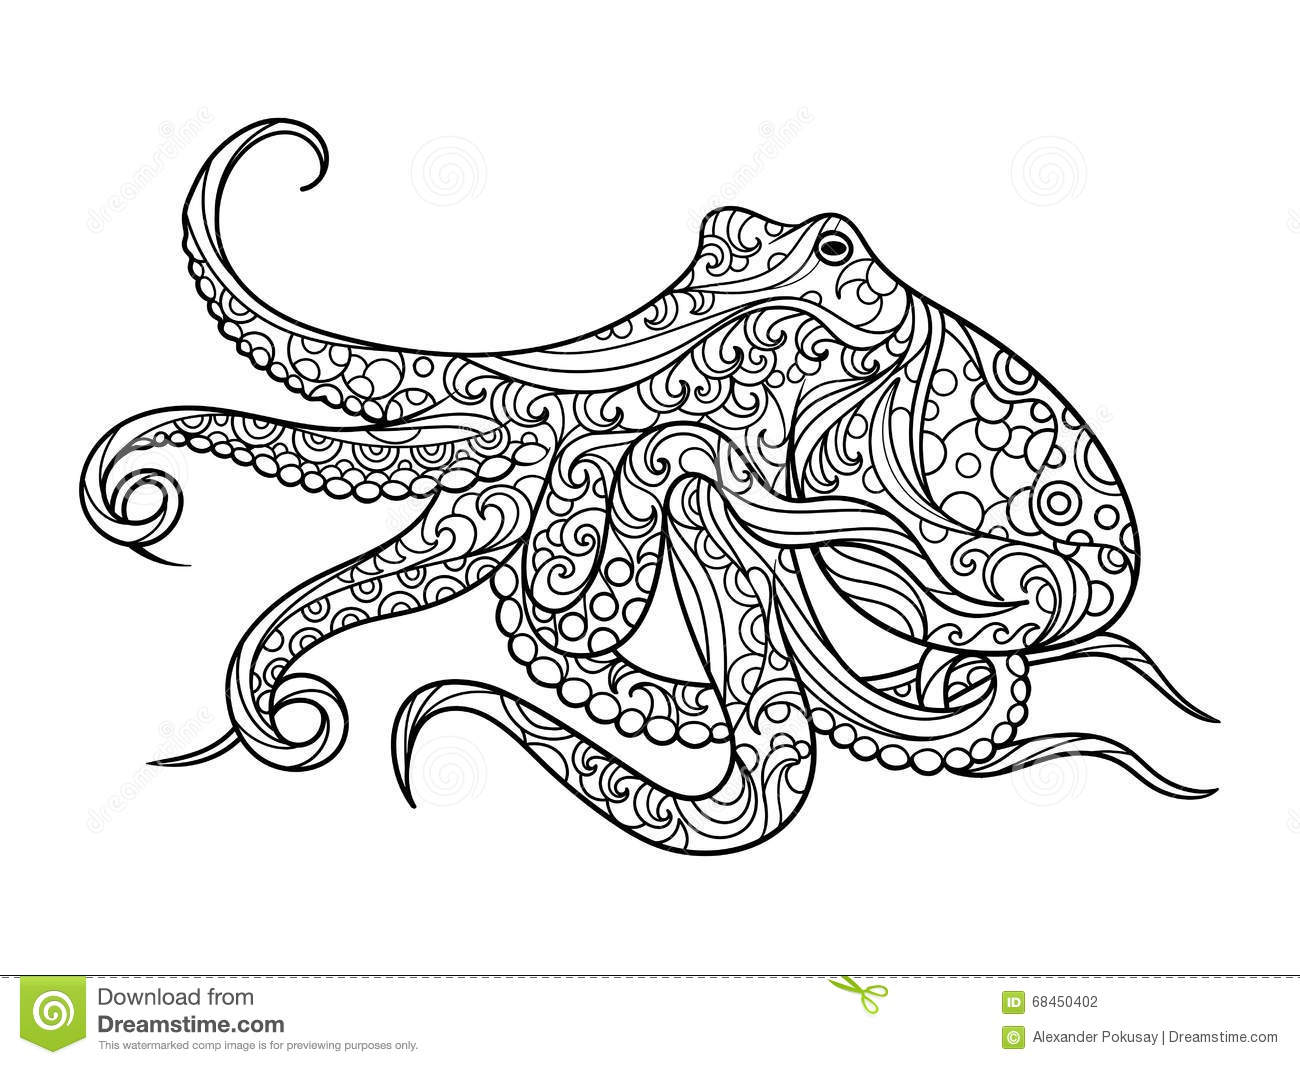 octopus coloring book adults vector sea animal illustration anti stress adult zentangle style black white